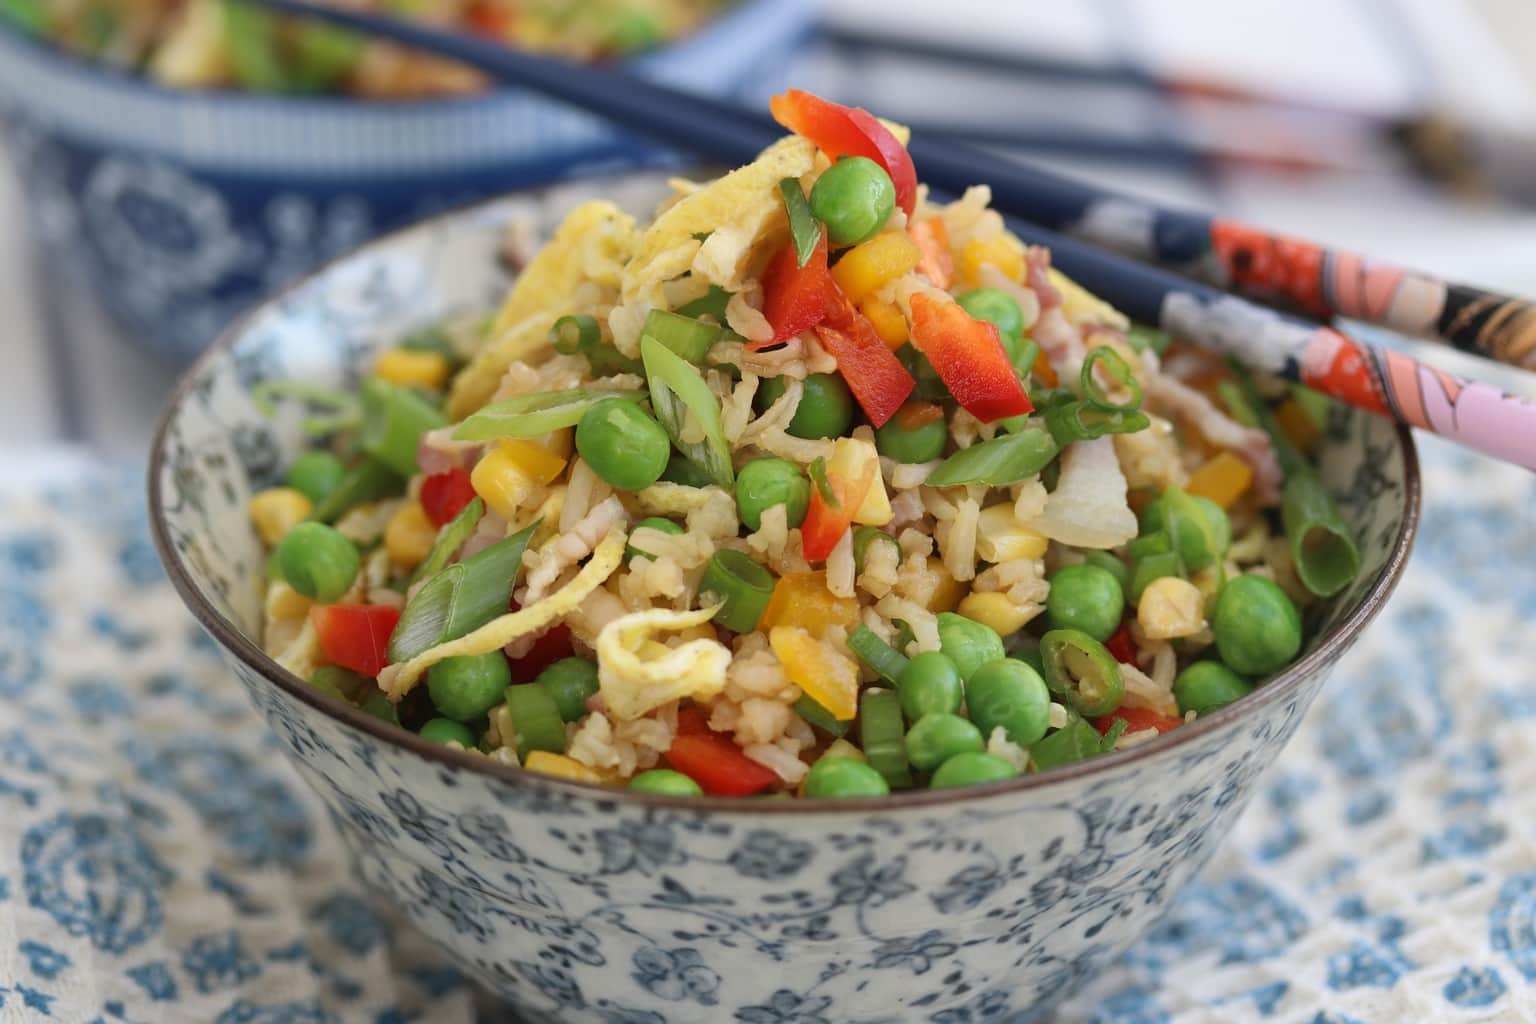 Eggy Fried Brown Rice with Vegetables and Arame